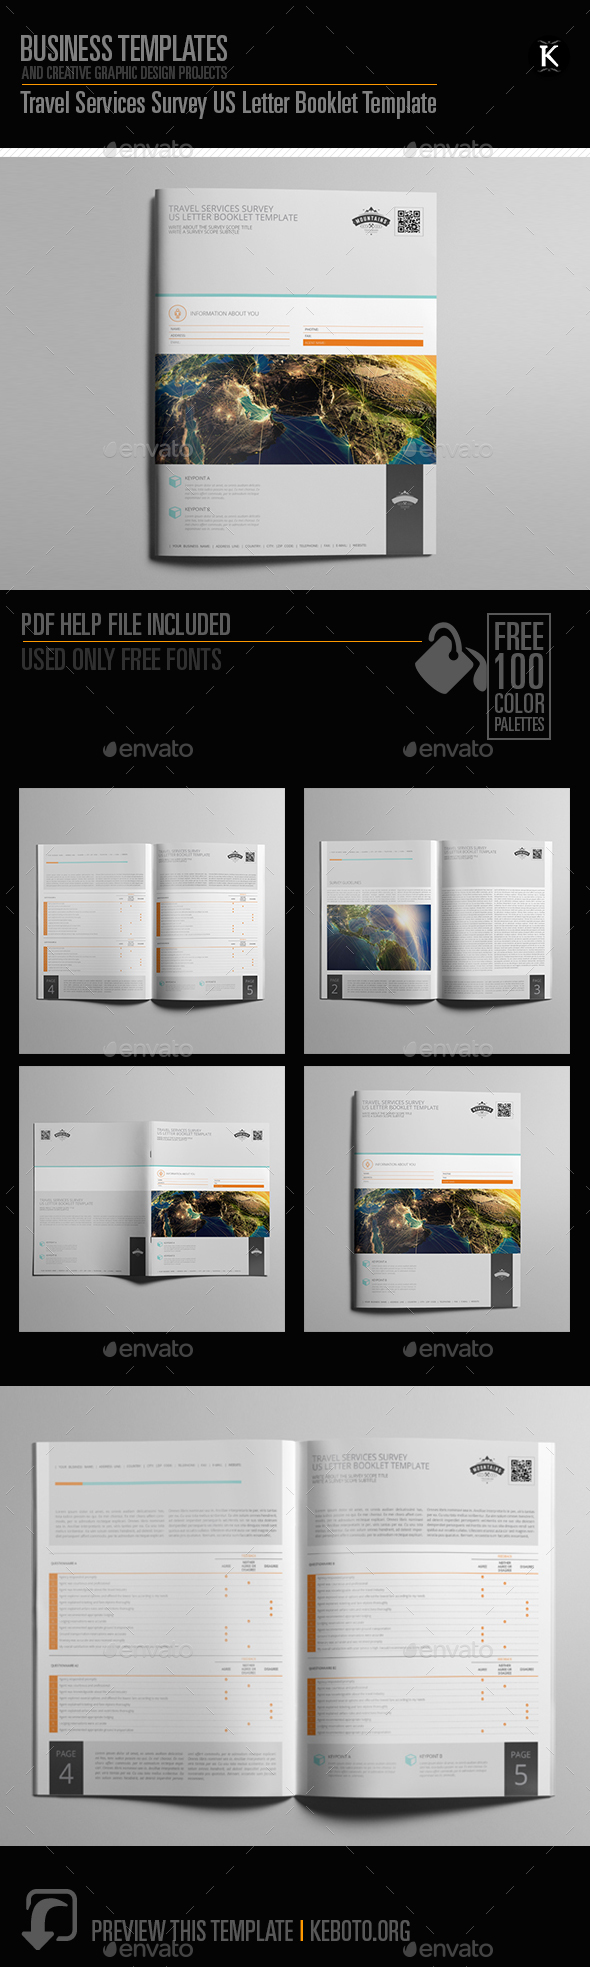 Travel Services Survey US Letter Booklet Template - Miscellaneous Print Templates